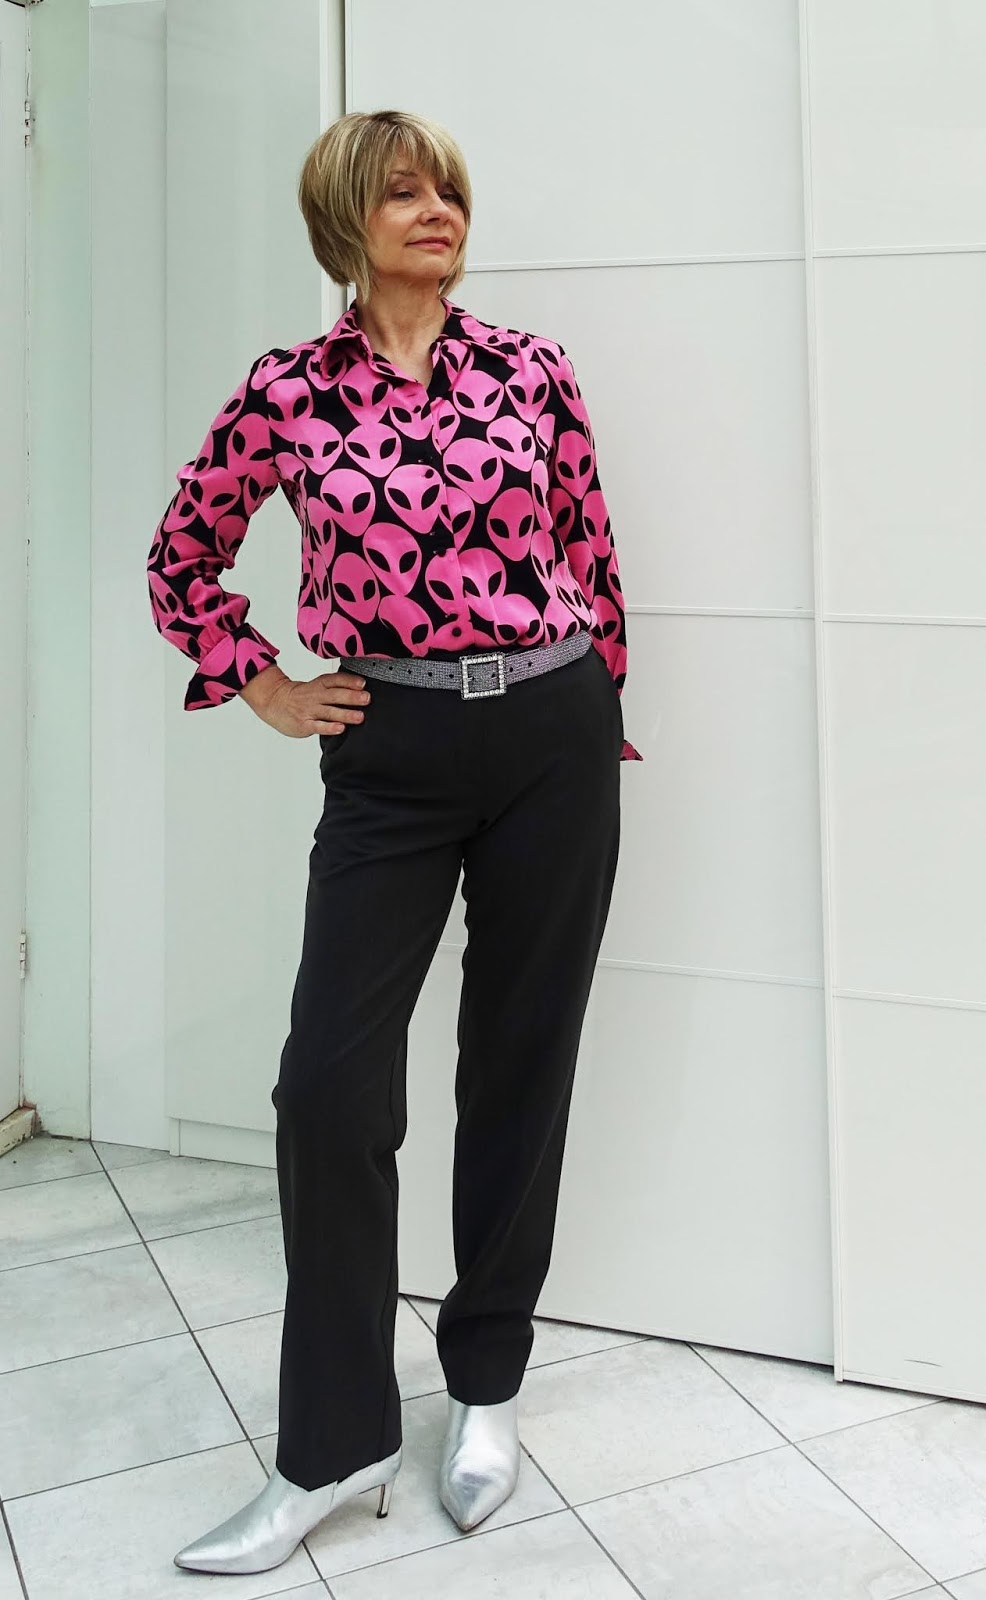 Gail Hanlon from Is This Mutton style blog in Fabienne Chapot Paris blouse worn with grey trousers and silver ankle boots.